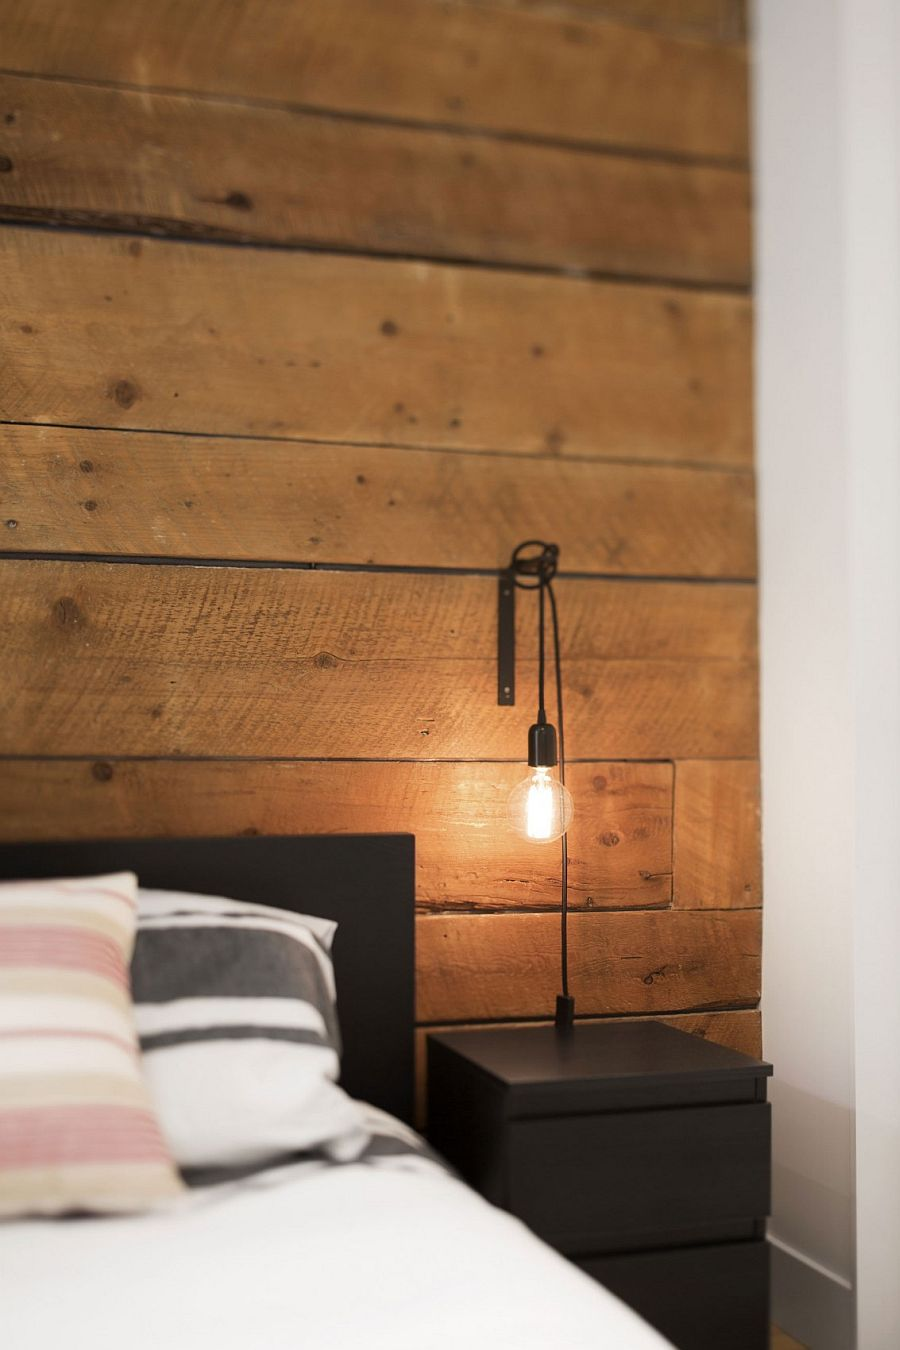 Bedside table and lighting add a touch of industrial charm